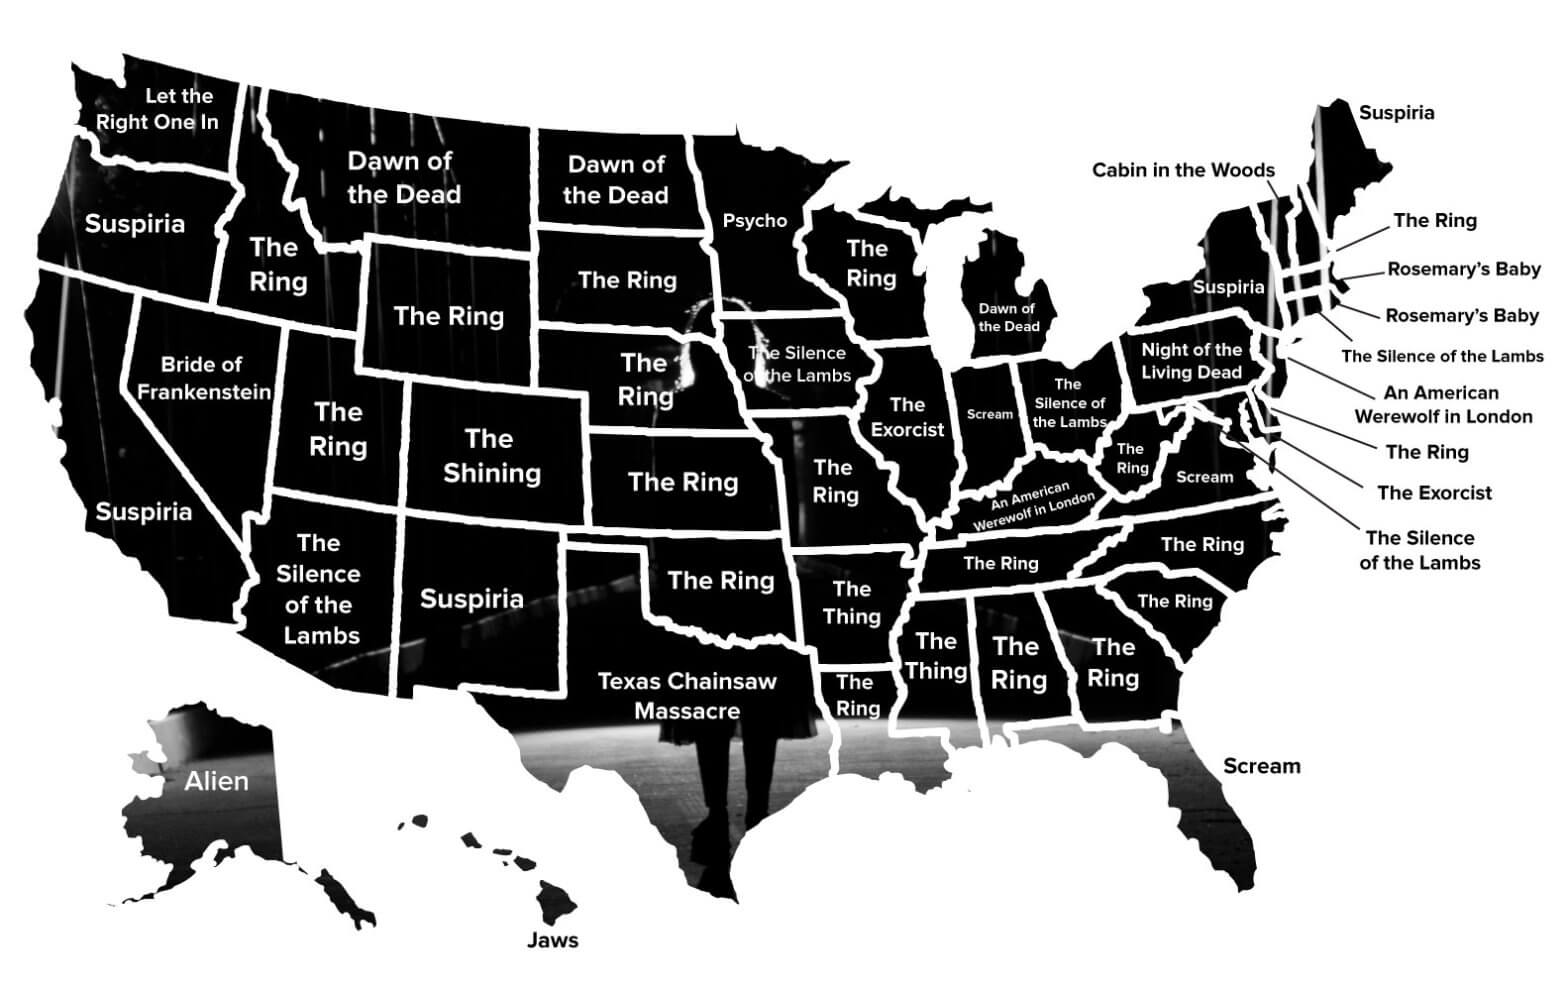 map infographic - New Infographic Examines What America's Favorite Horror Flicks Are